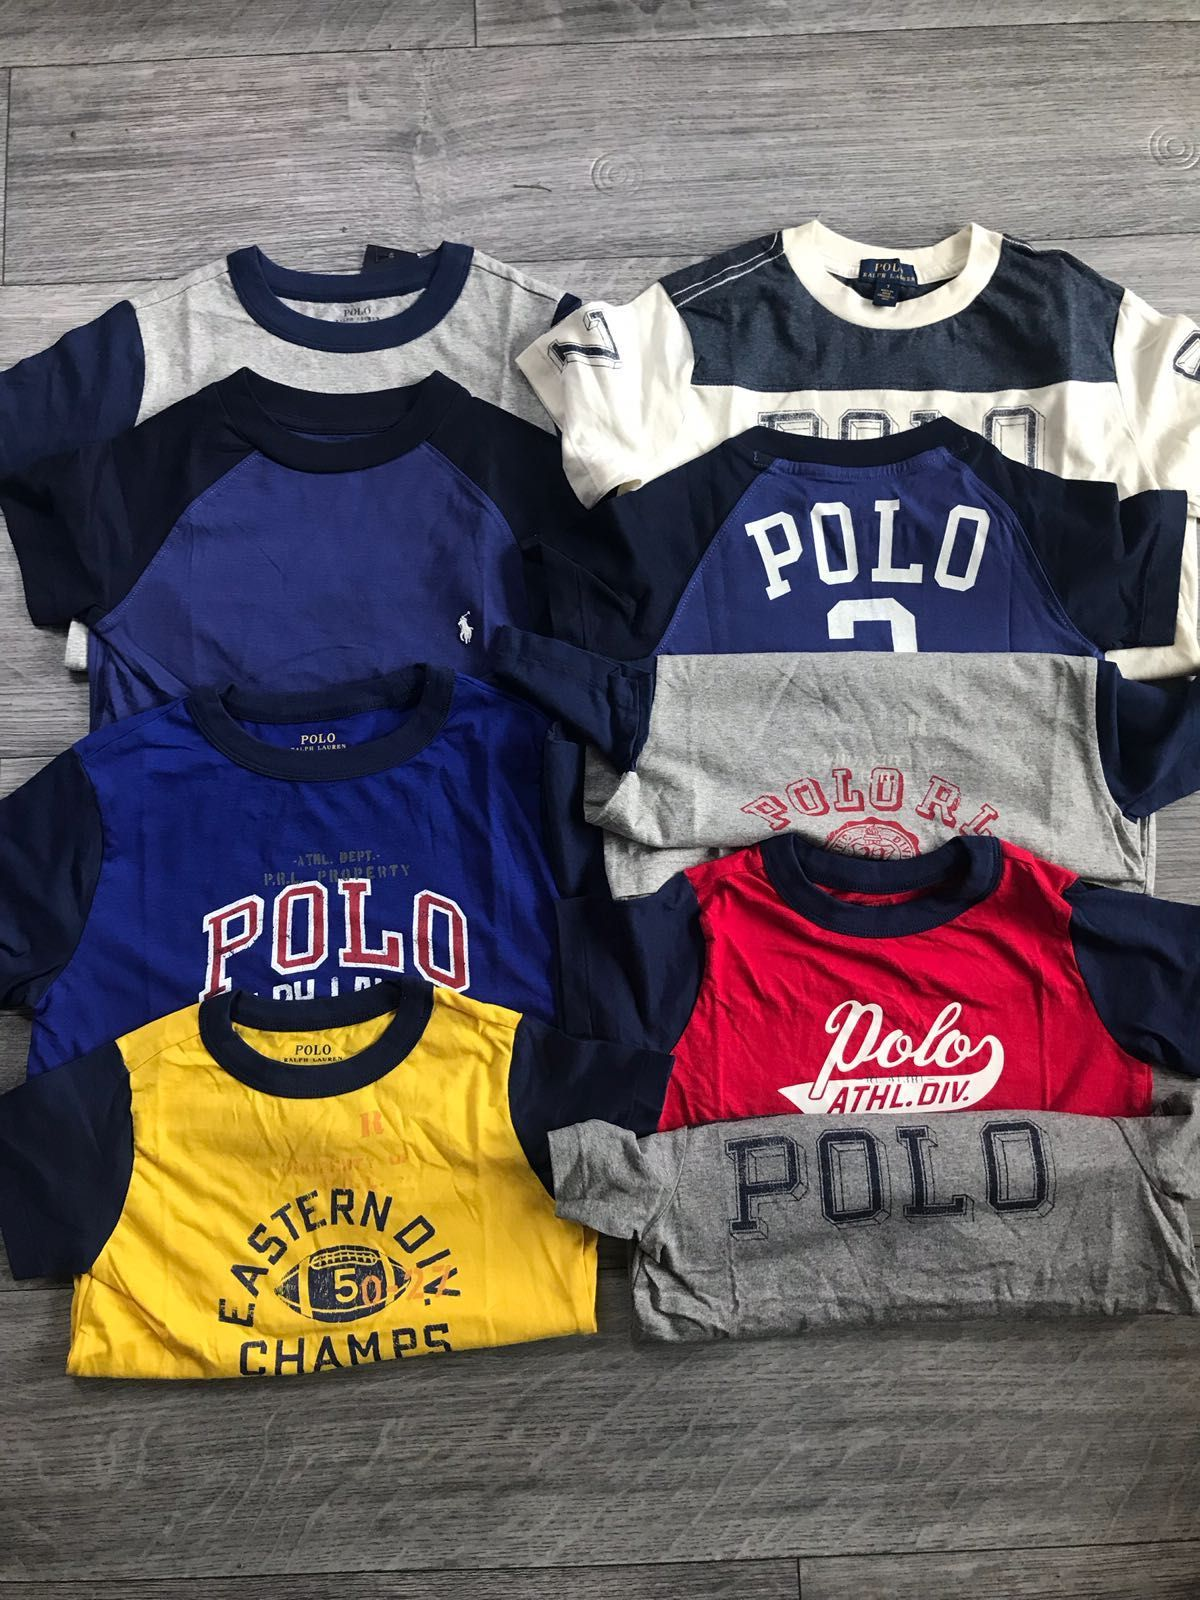 Ralph Lauren Boys Polo T Shirts Are Some Serious Hot Sellers On The